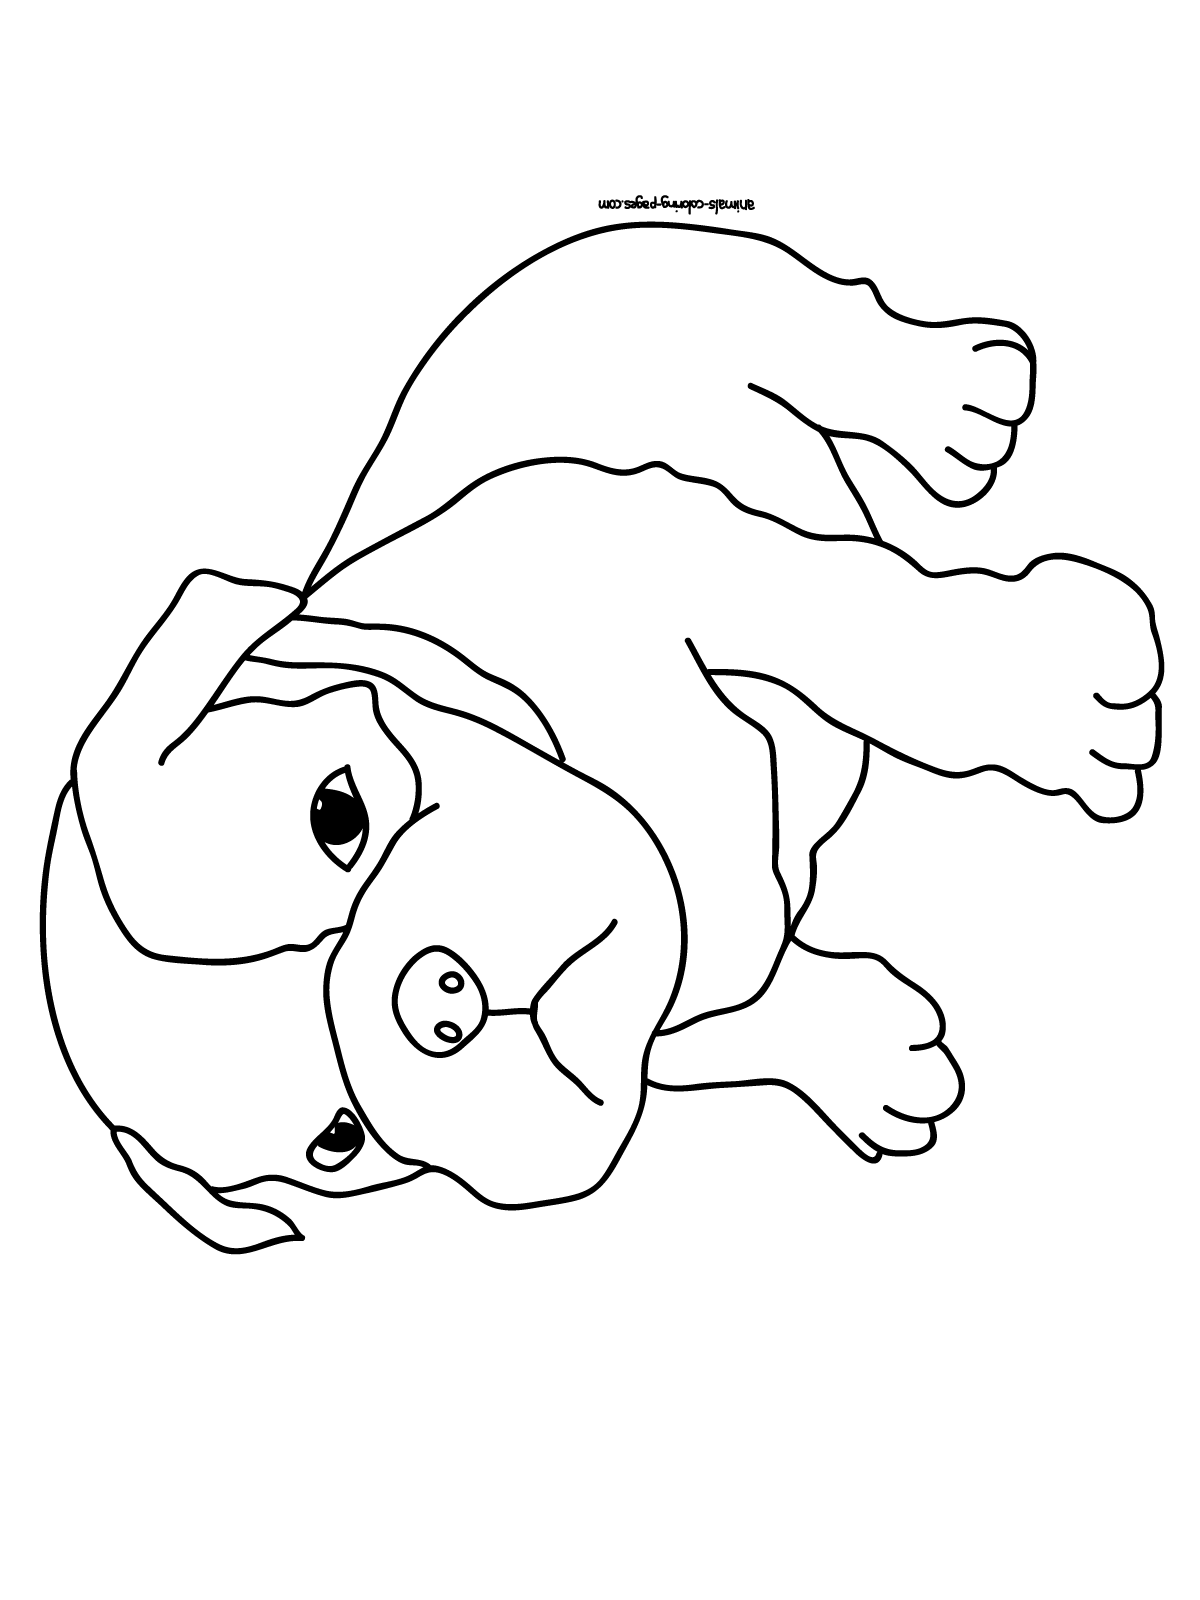 dog coloring pages printable other kids coloring pages printable find beautiful coloring pages at - Beautiful Coloring Pages Print